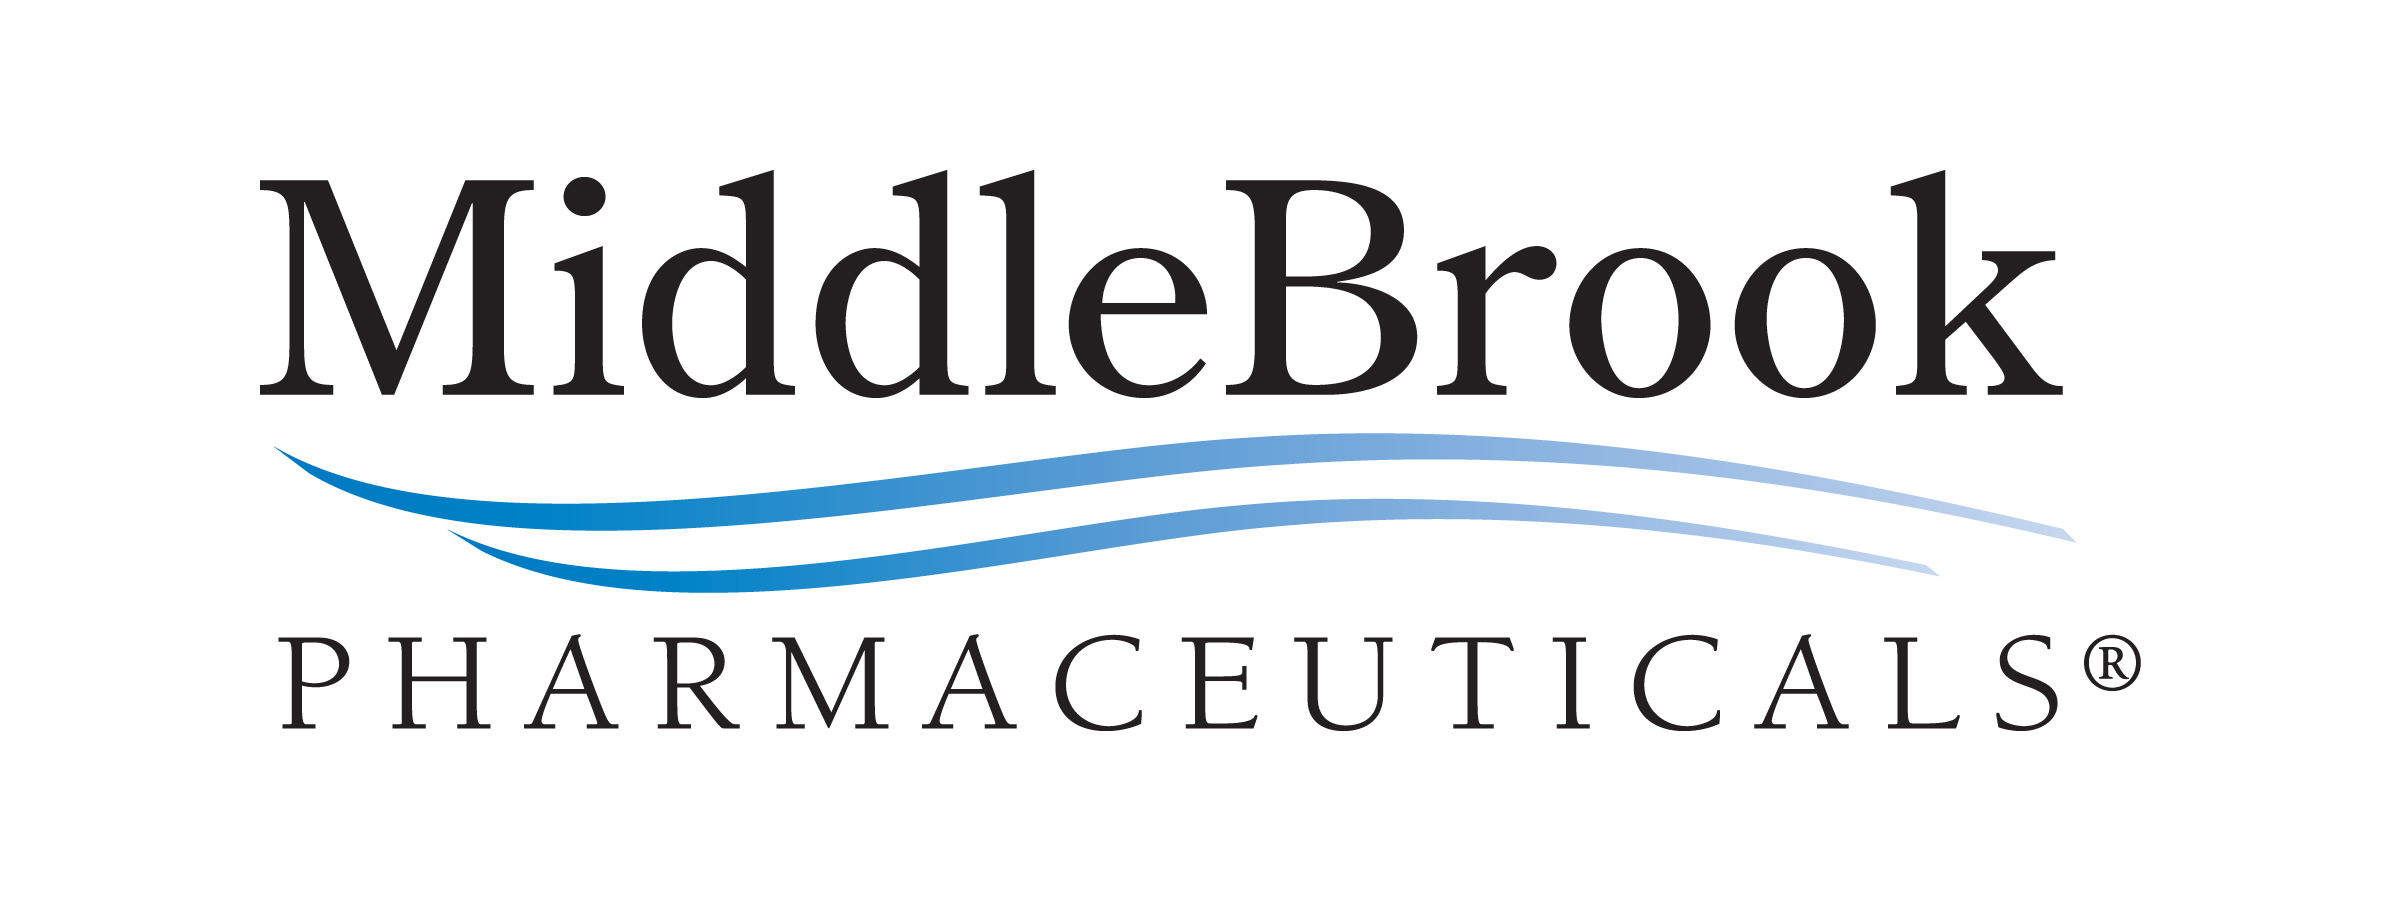 MiddleBrook Pharmaceuticals, Inc. Logo